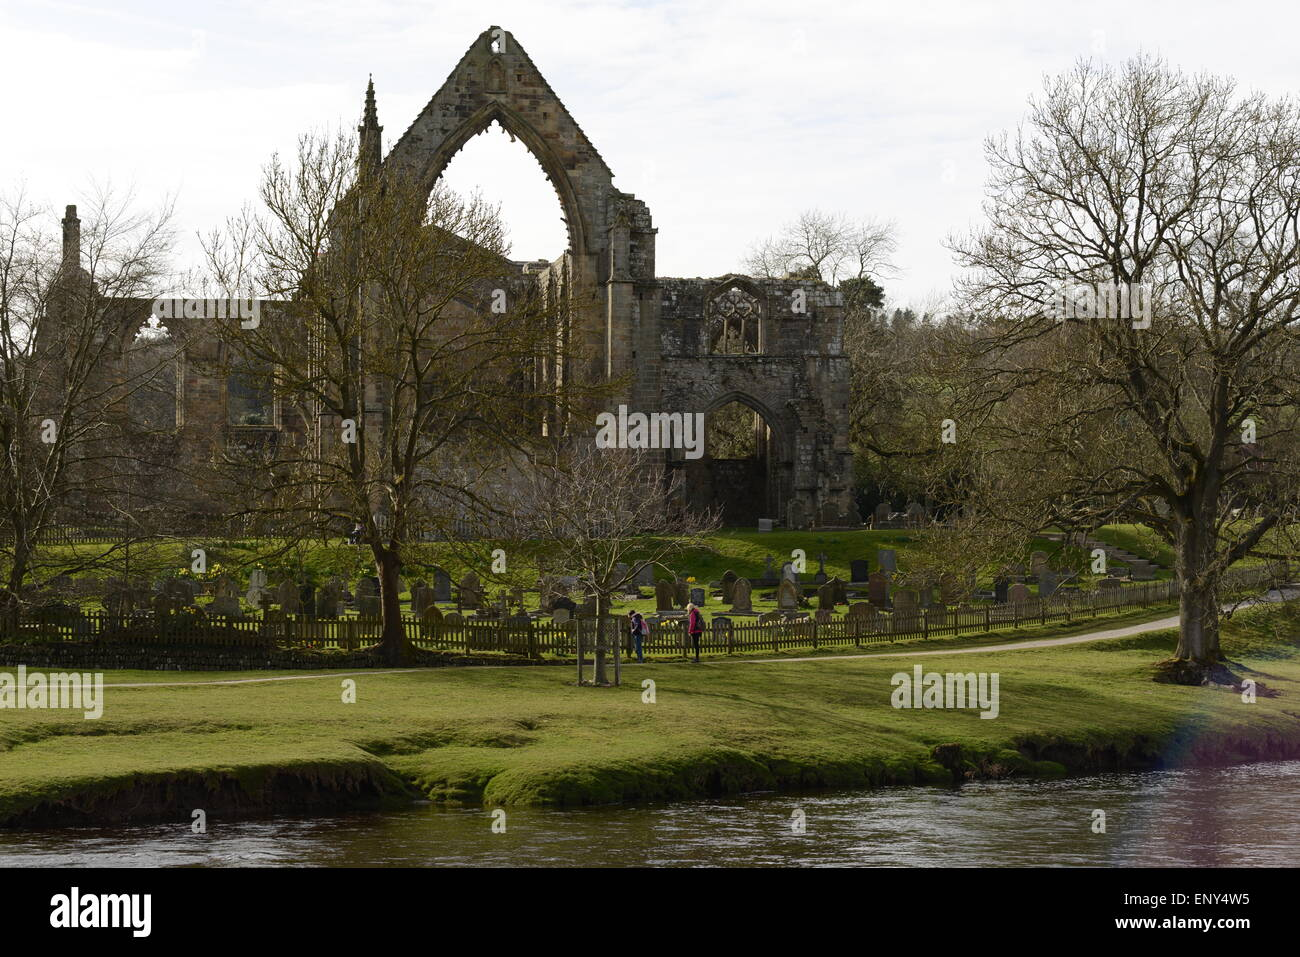 Delightful view of the abbey (Bolton) on a warm spring morning - Stock Image